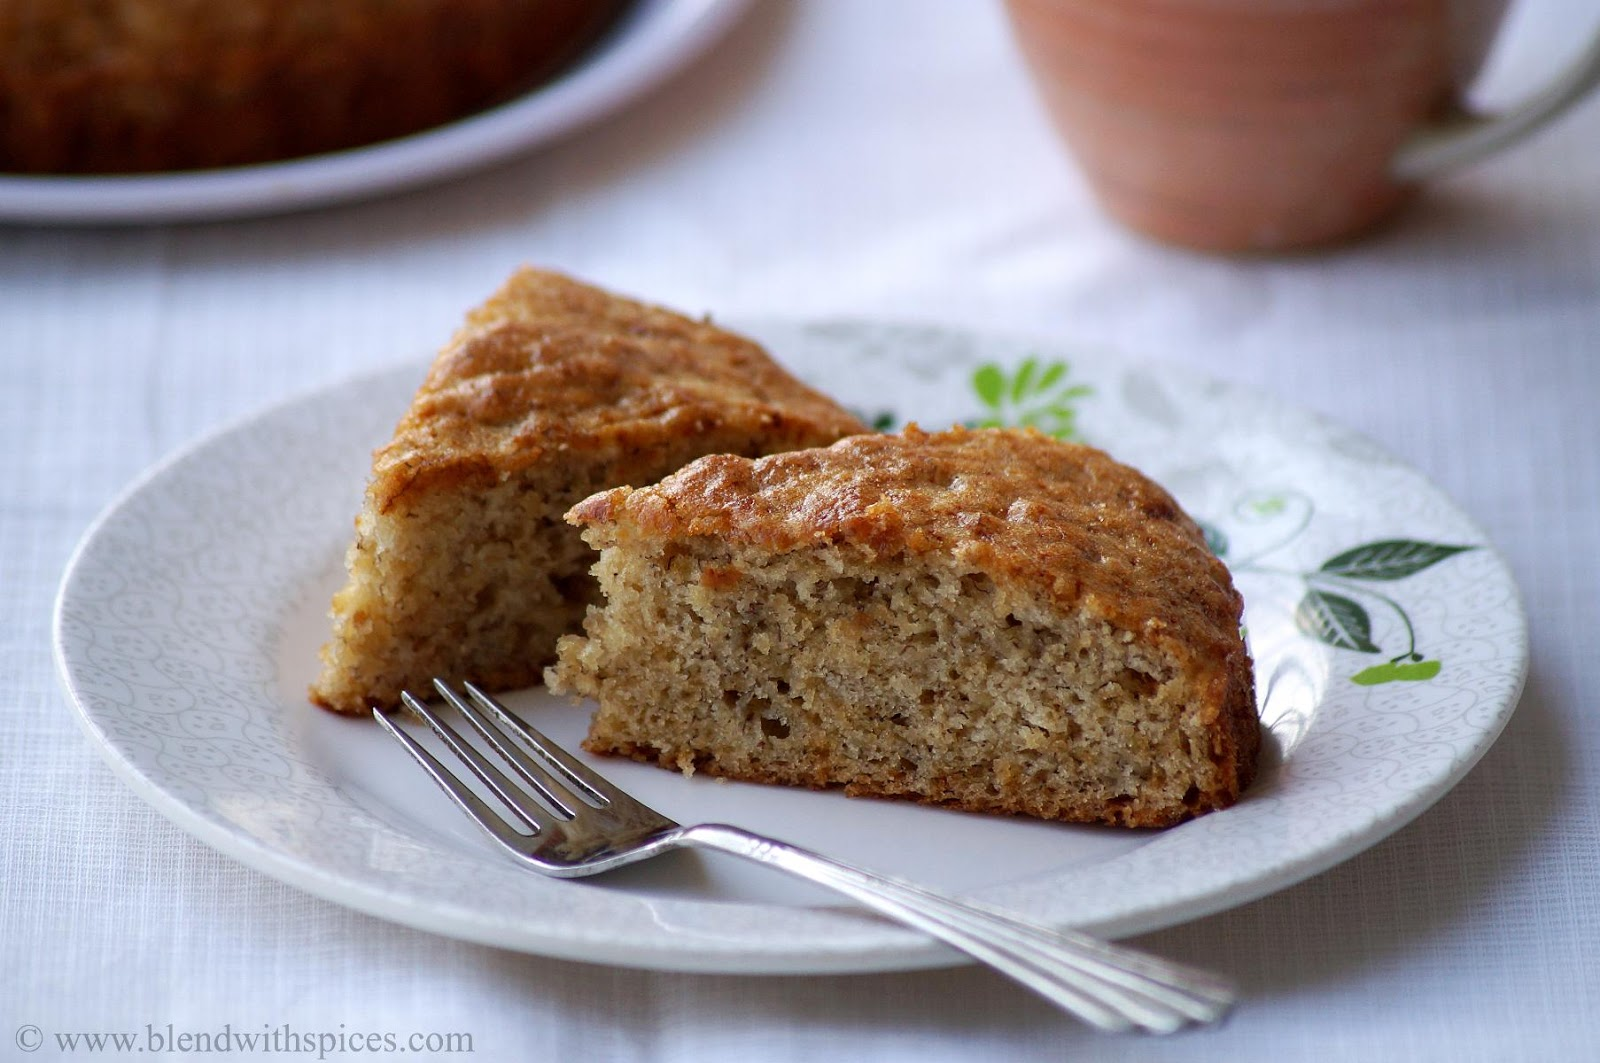 Eggless Banana Cake Recipe - Vegan Banana Cake Recipe - Step by Step ...